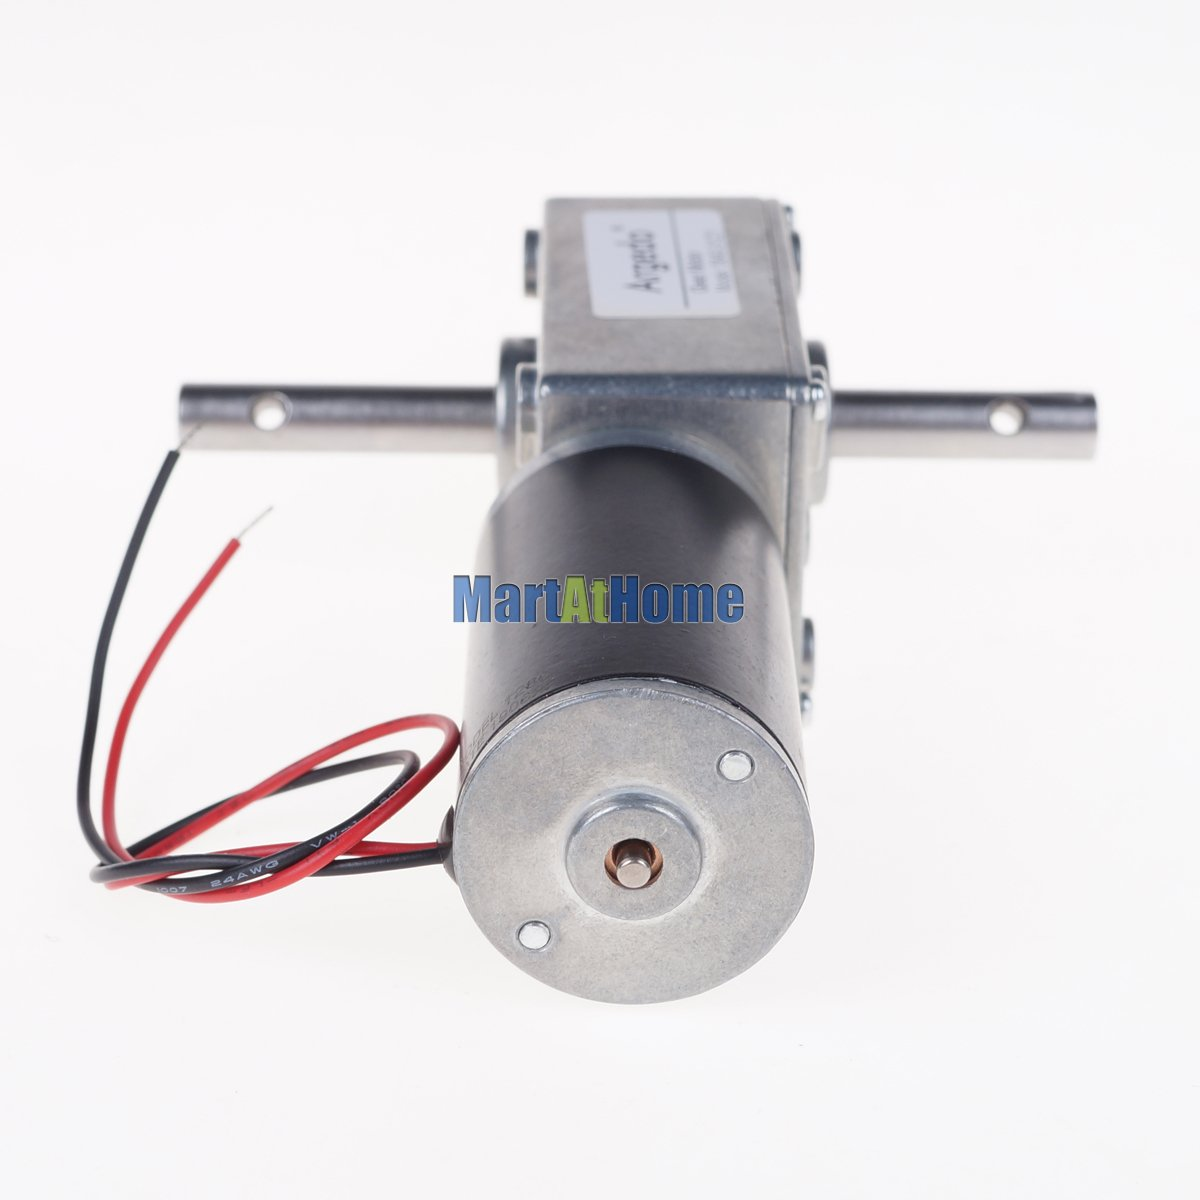 Image 4 - 5840 31zy Worm DC Geared Motor Double Shaft 21W 12V 24V Self locking Max. 70 Kg.cm for DIY Automatic drying rack-in DC Motor from Home Improvement